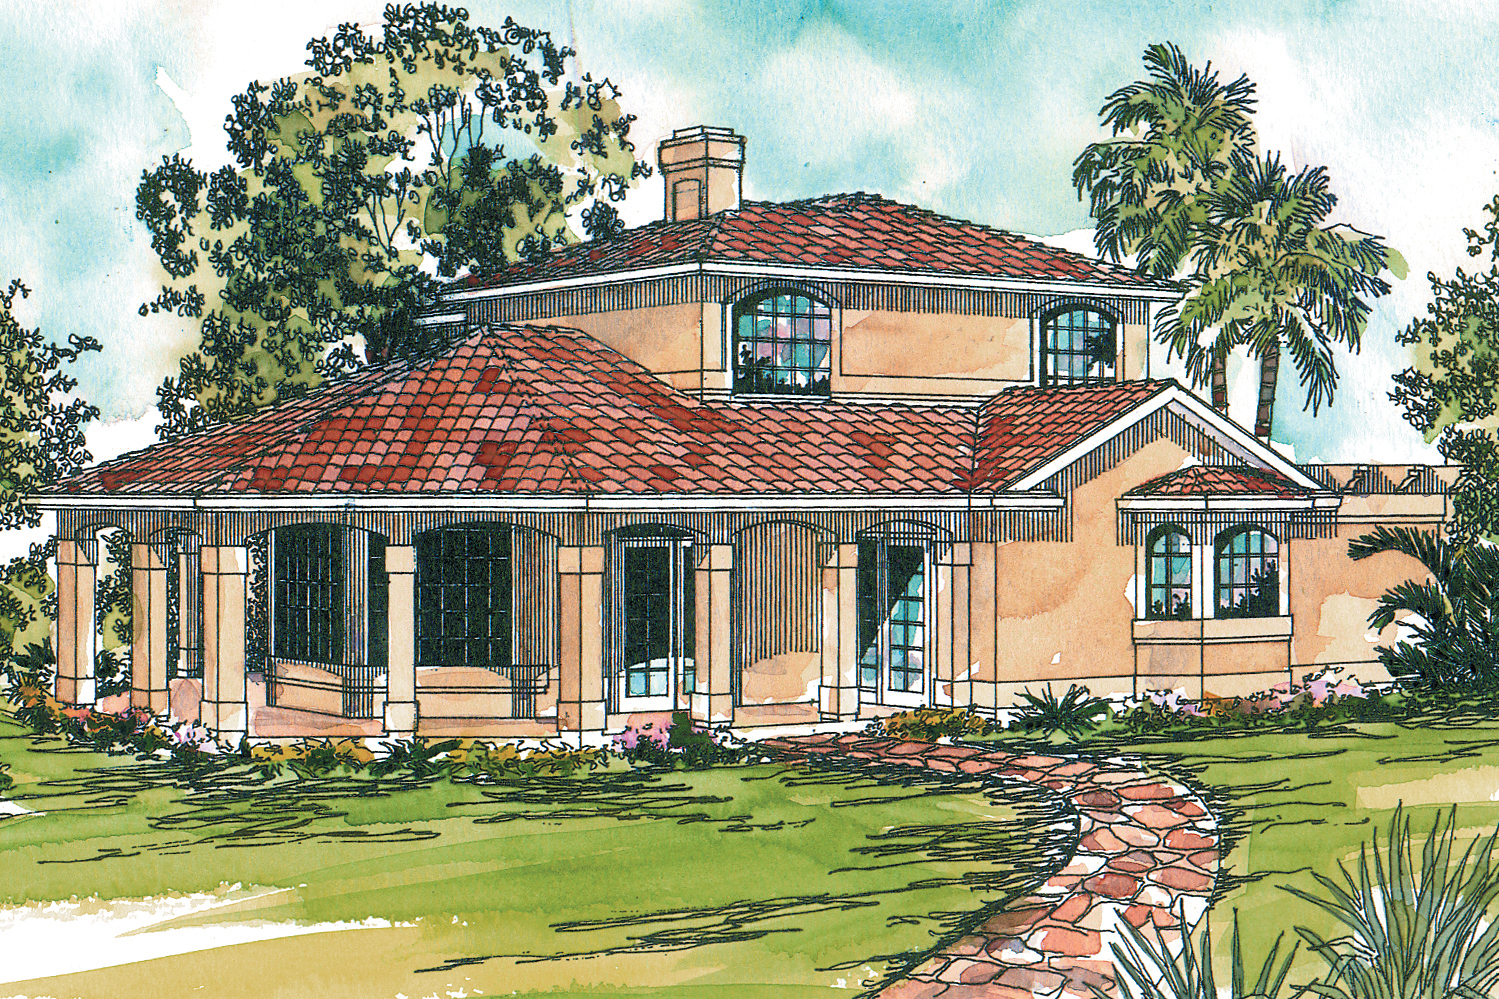 Mediterranean house plans lauderdale 11 037 associated for Mediterranean house plans